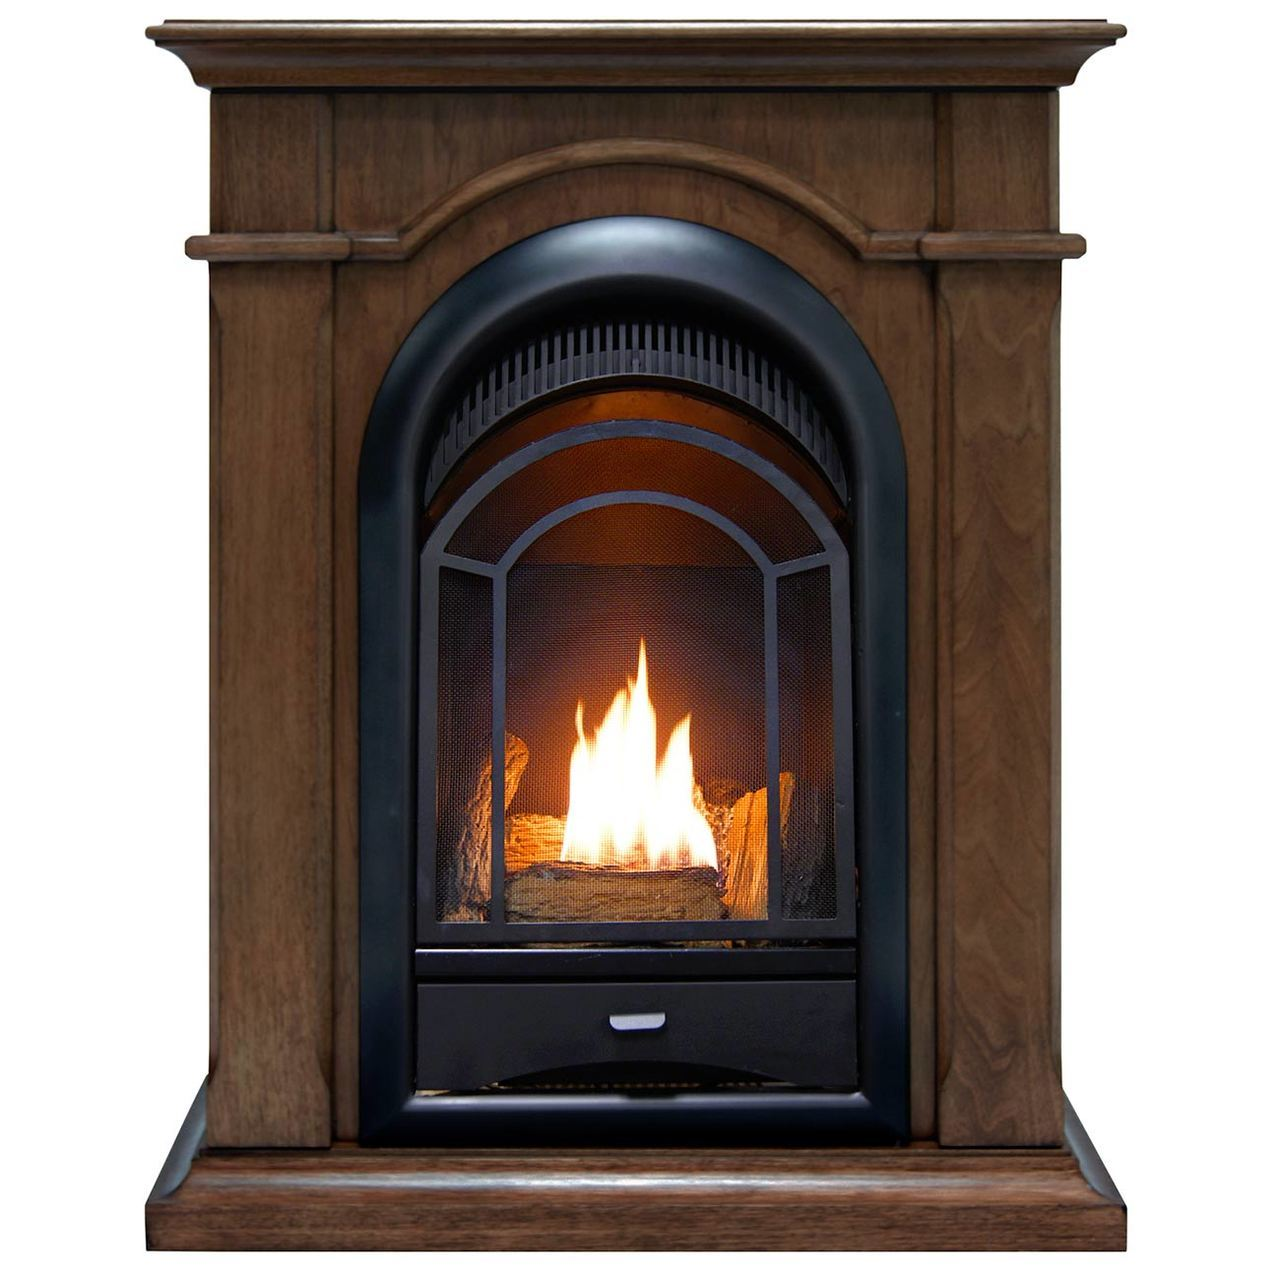 Btu Gas Fireplace Procom Fs100t W Ventless Fireplace System 10k Btu Duel Fuel Thermostat Insert And Walnut Mantel